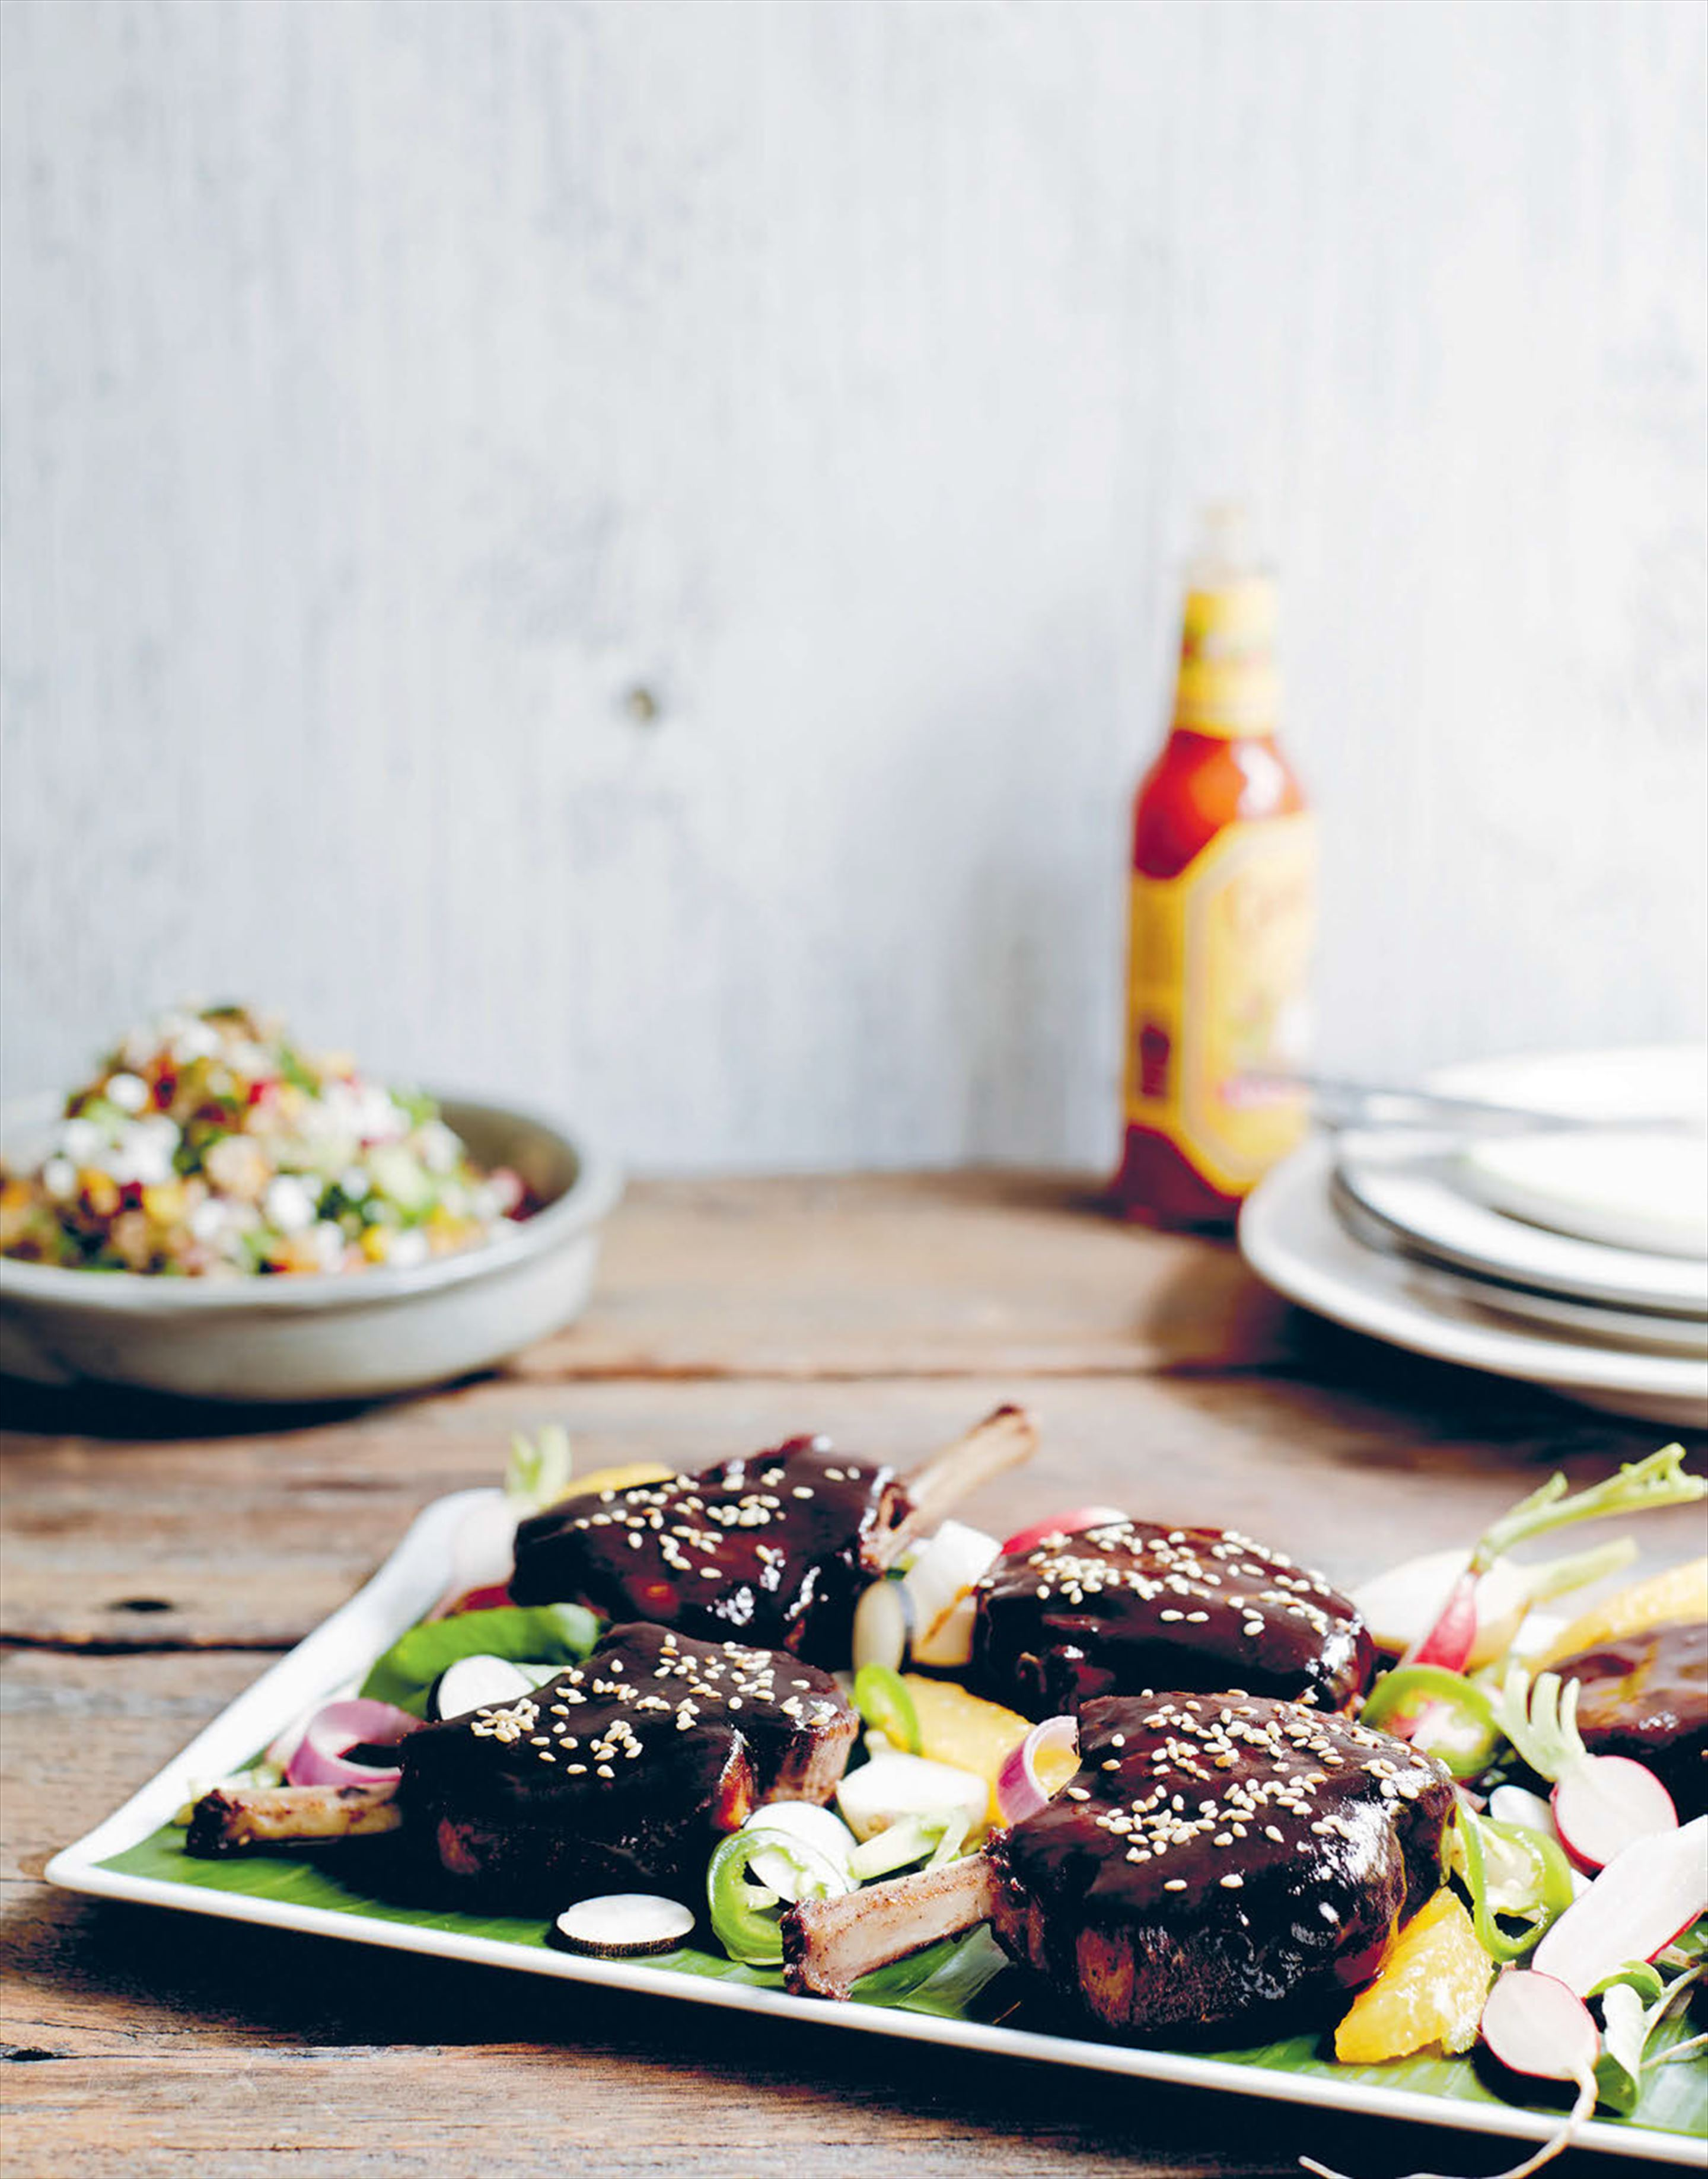 Glazed Mexican spiced lamb chops with ancient grains & pickles